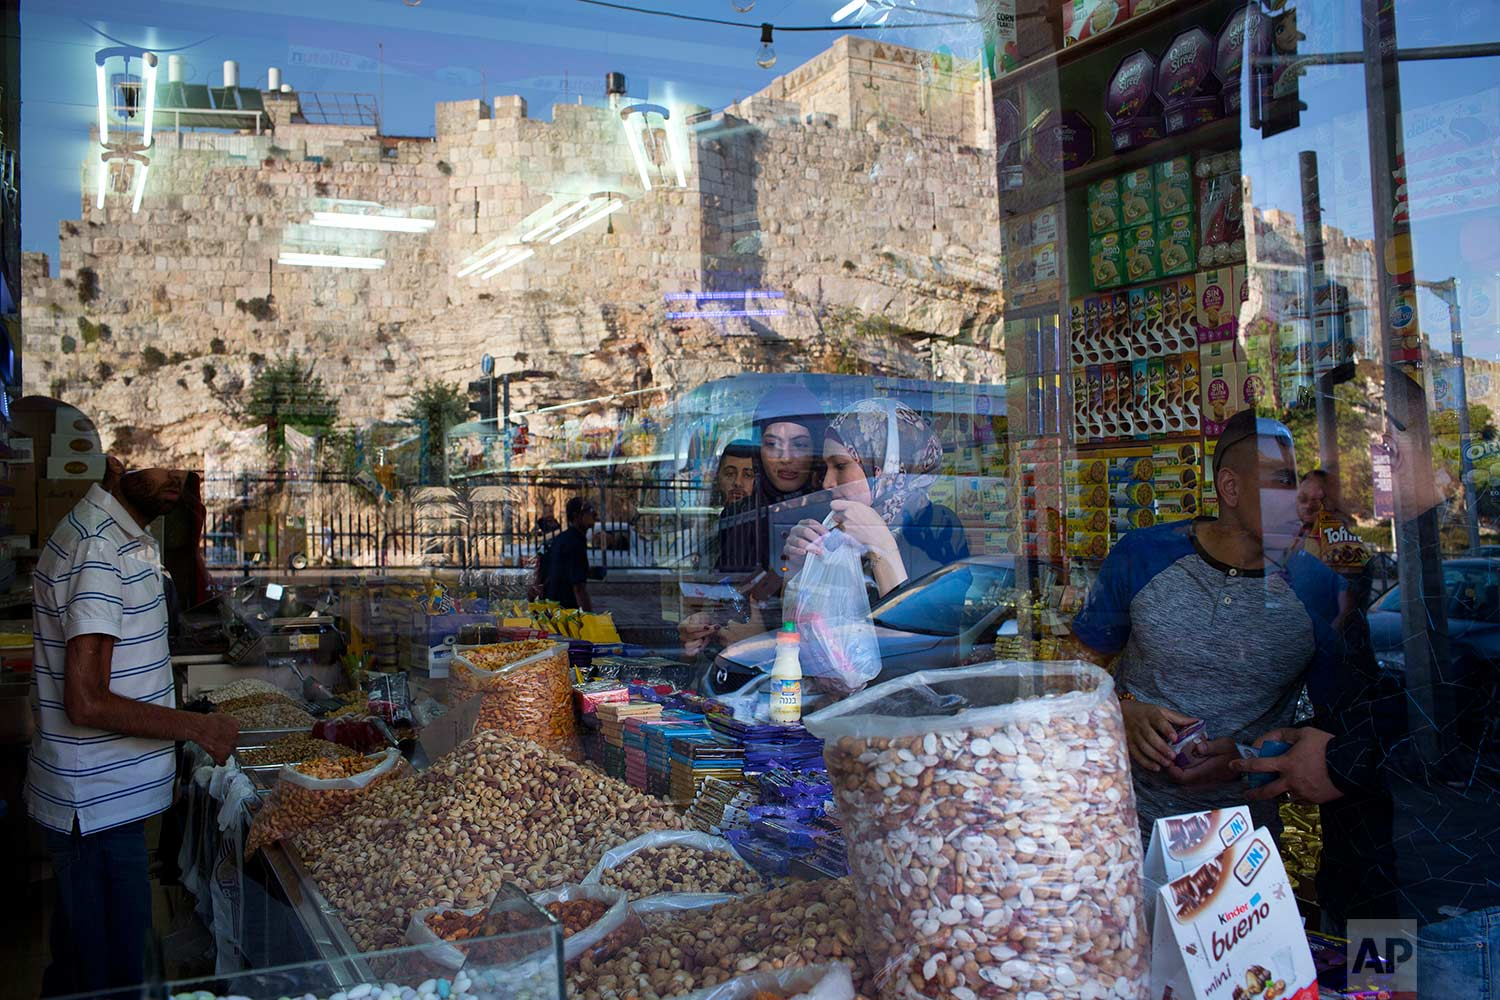 In this Saturday, Sept. 2, 2017 photo, people buy from a grocery store located between Damascus Gate and the Flowers Gate in Jerusalem's Old City. (AP Photo/Oded Balilty)